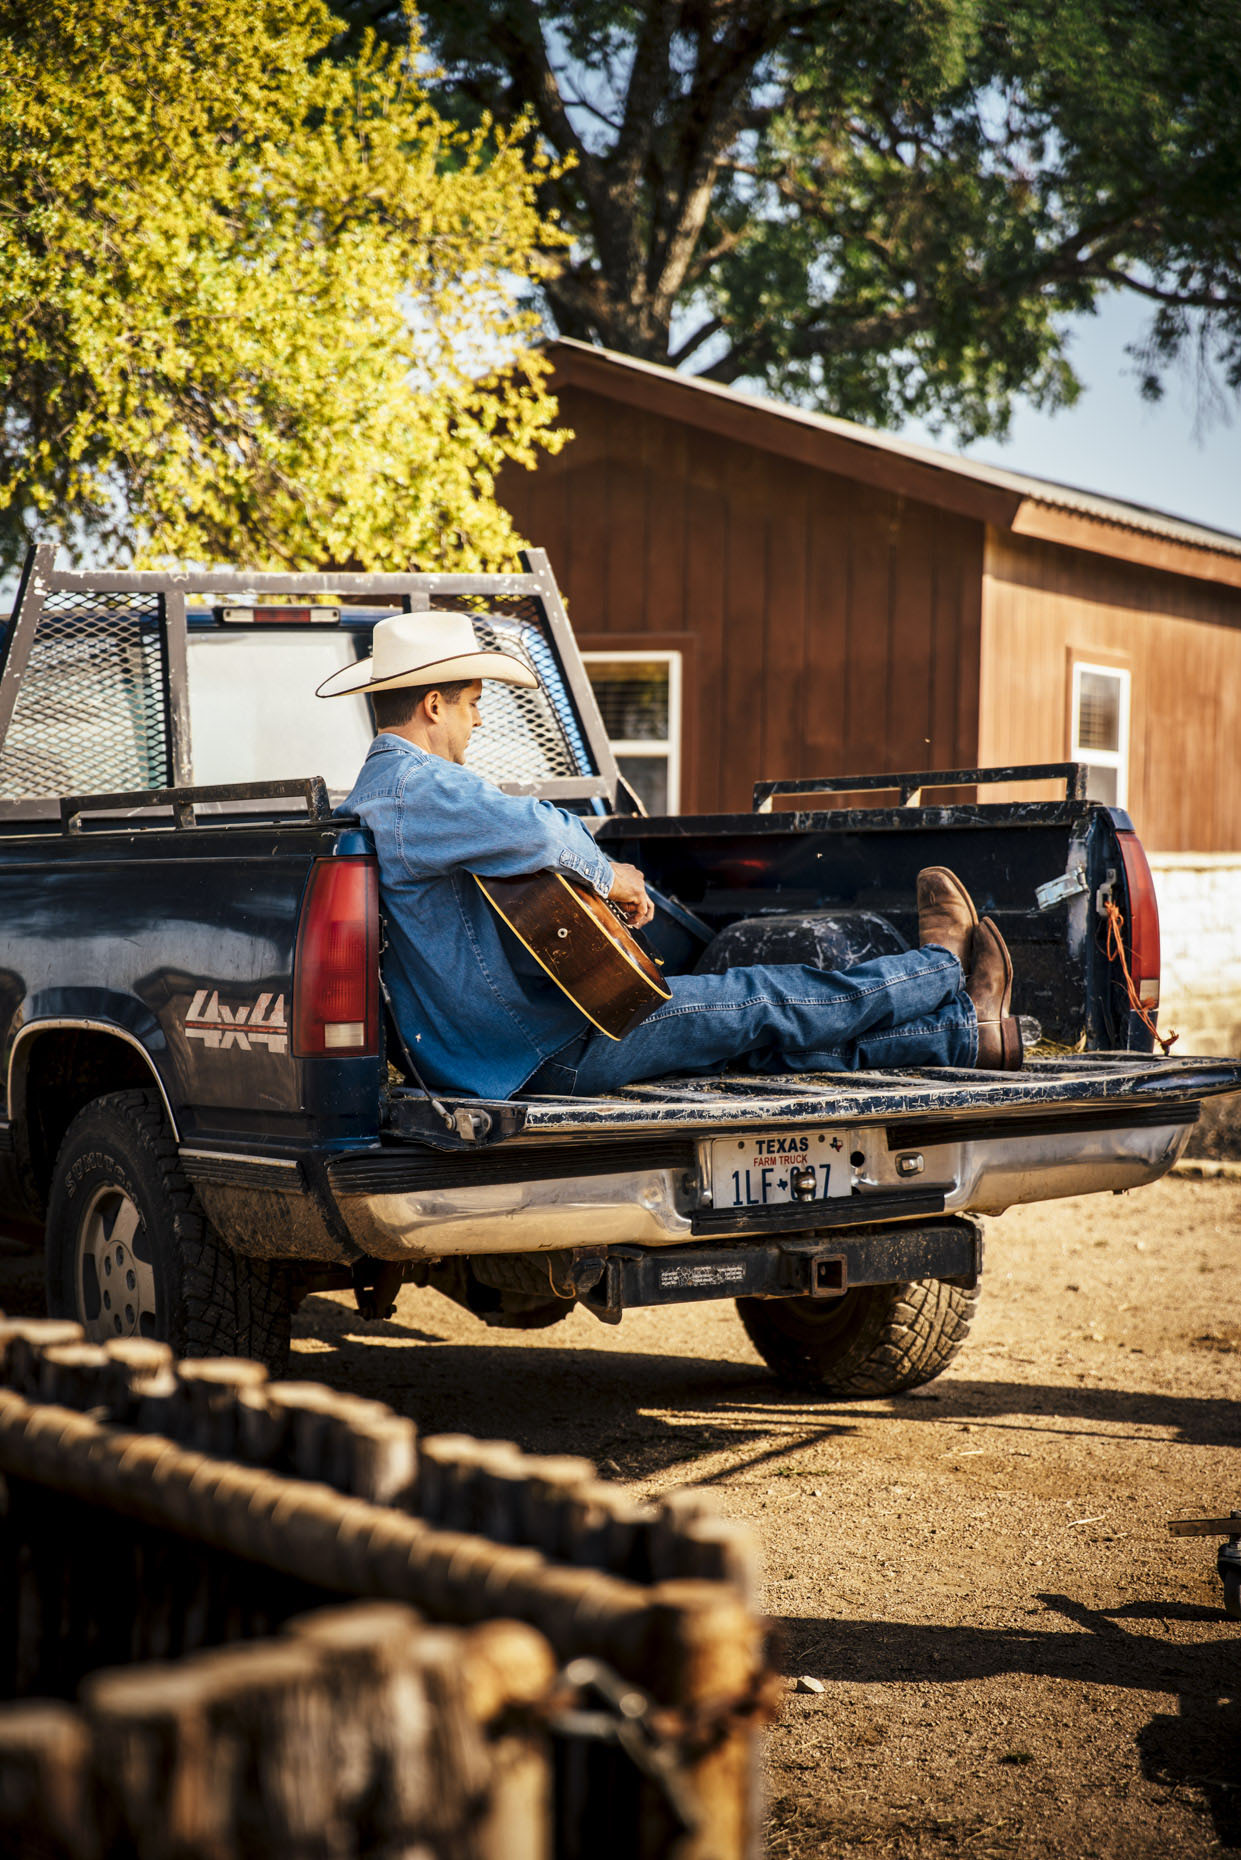 Man in cowboy hat sitting in back of pickup truck on horse ranch playing guitar